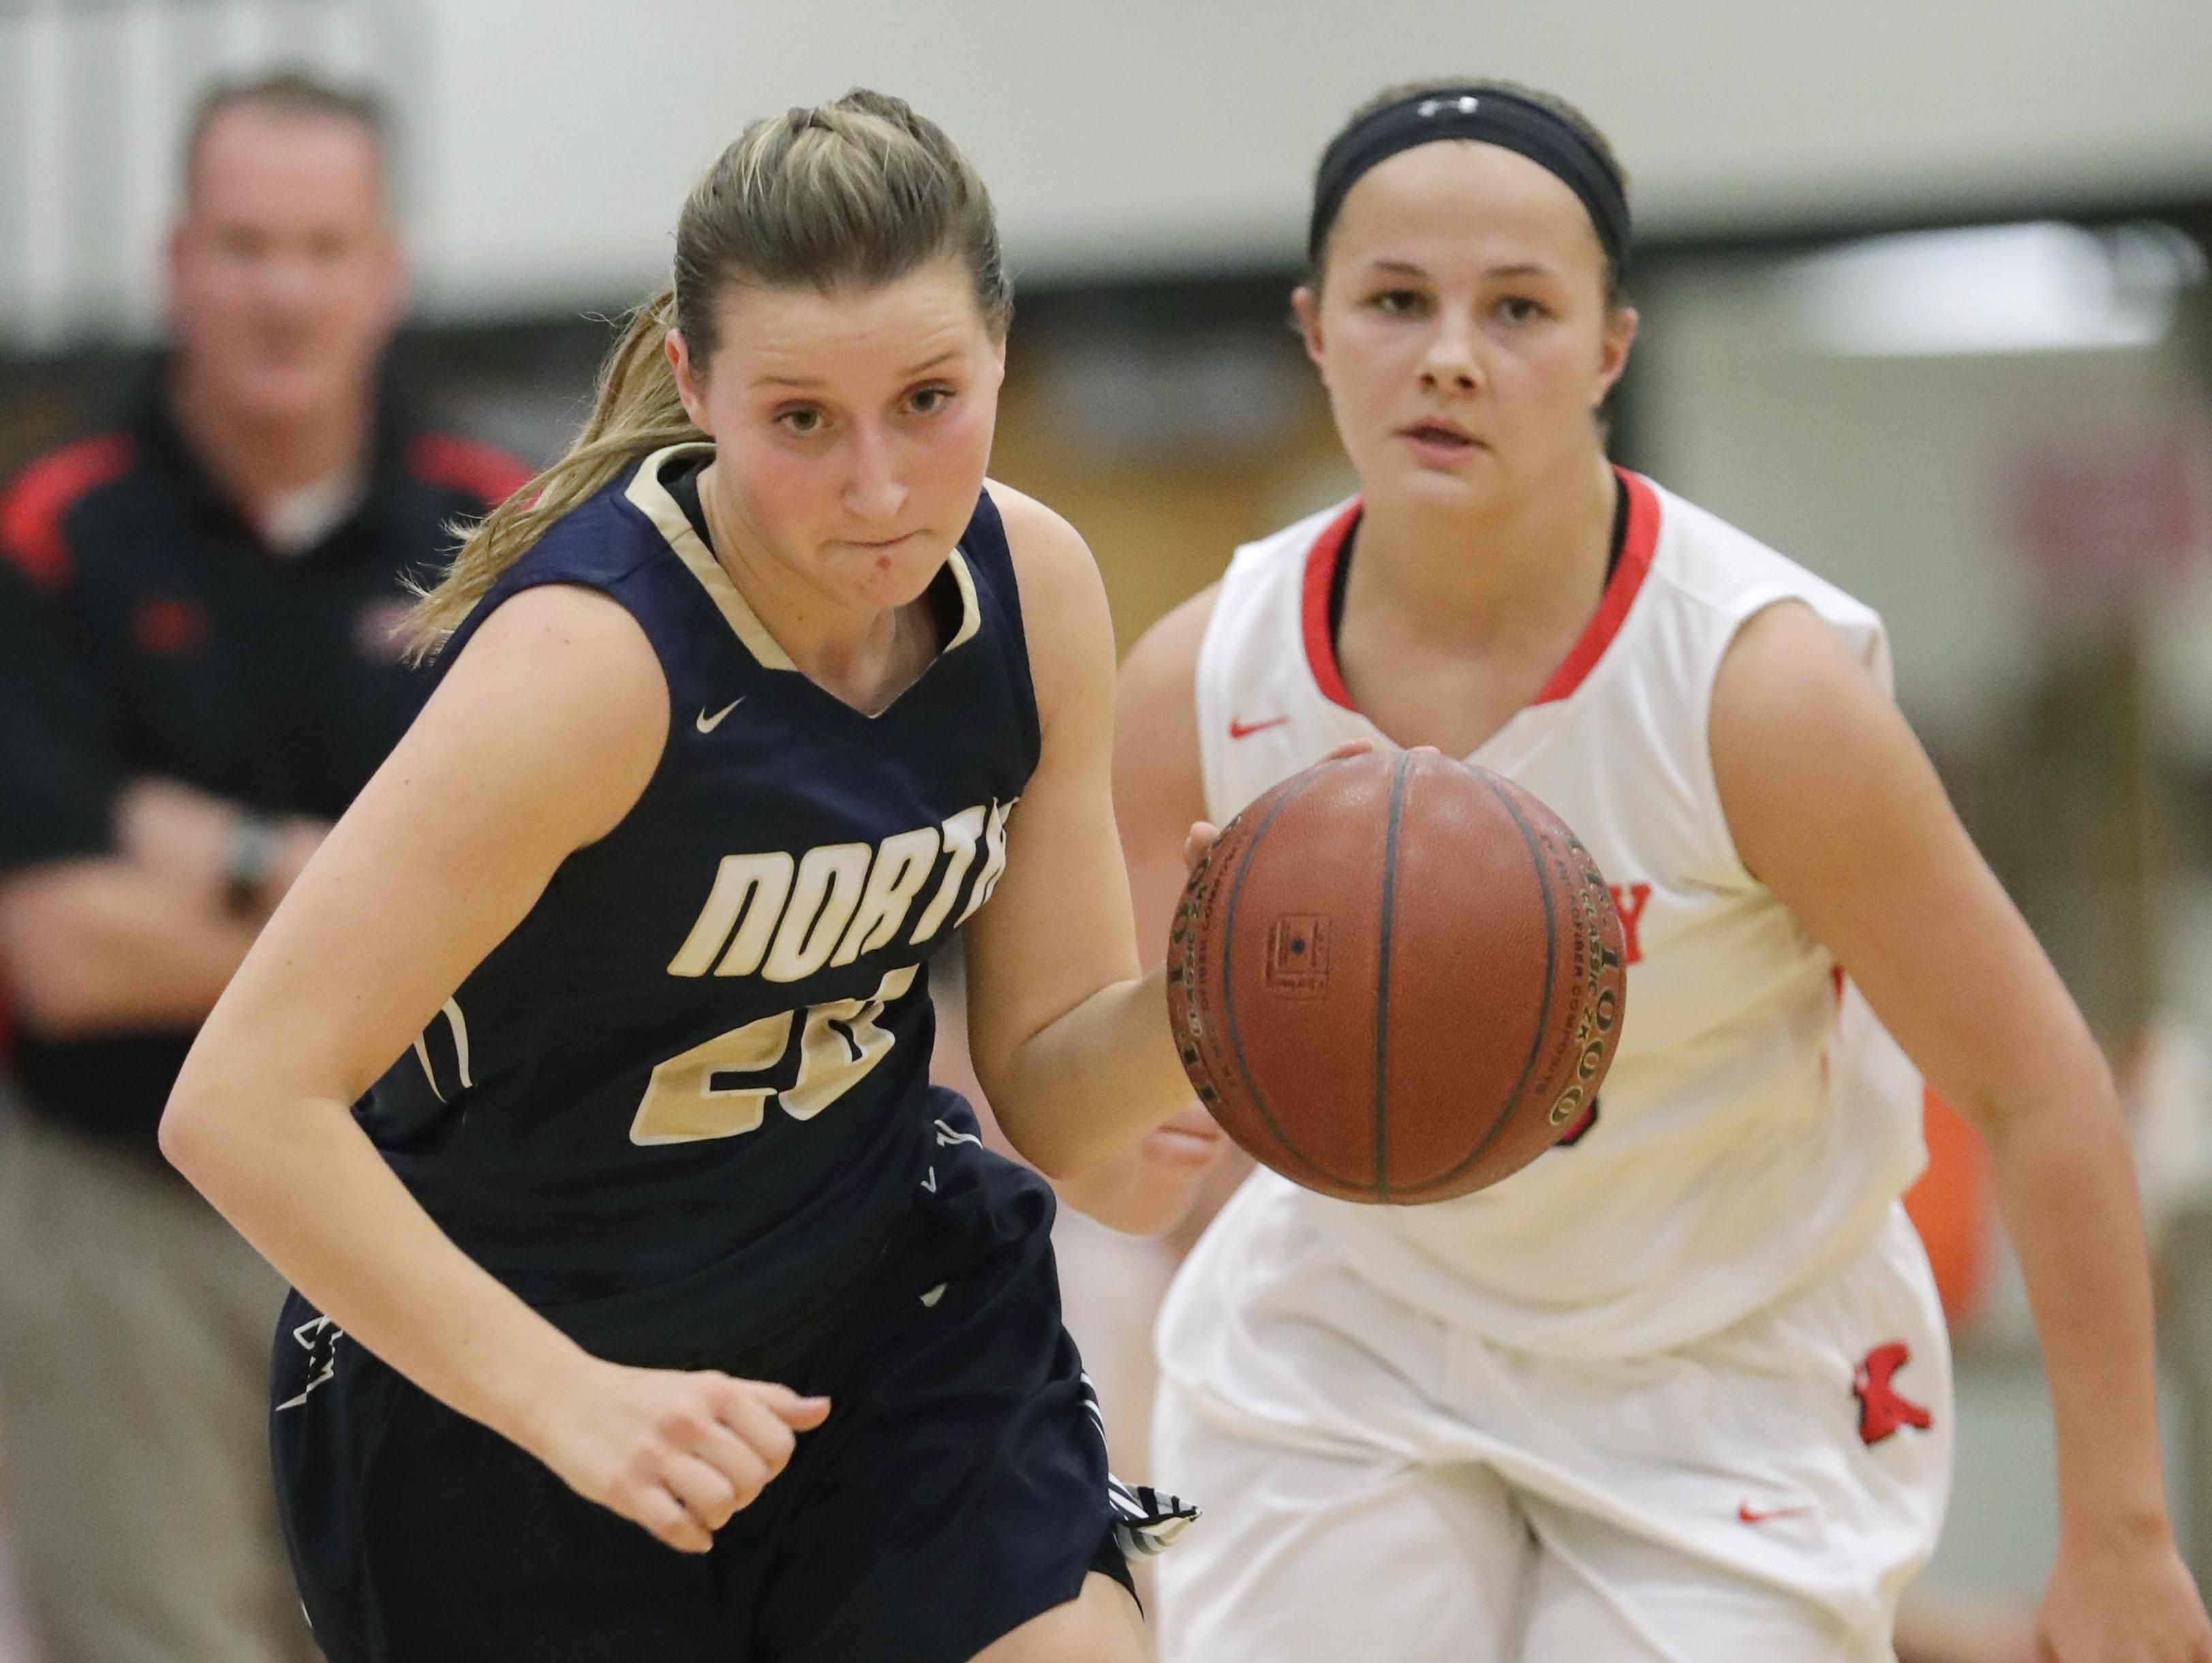 Sydney Levy of Appleton North, left, was the Player of the Year in the Fox Valley Association this season.